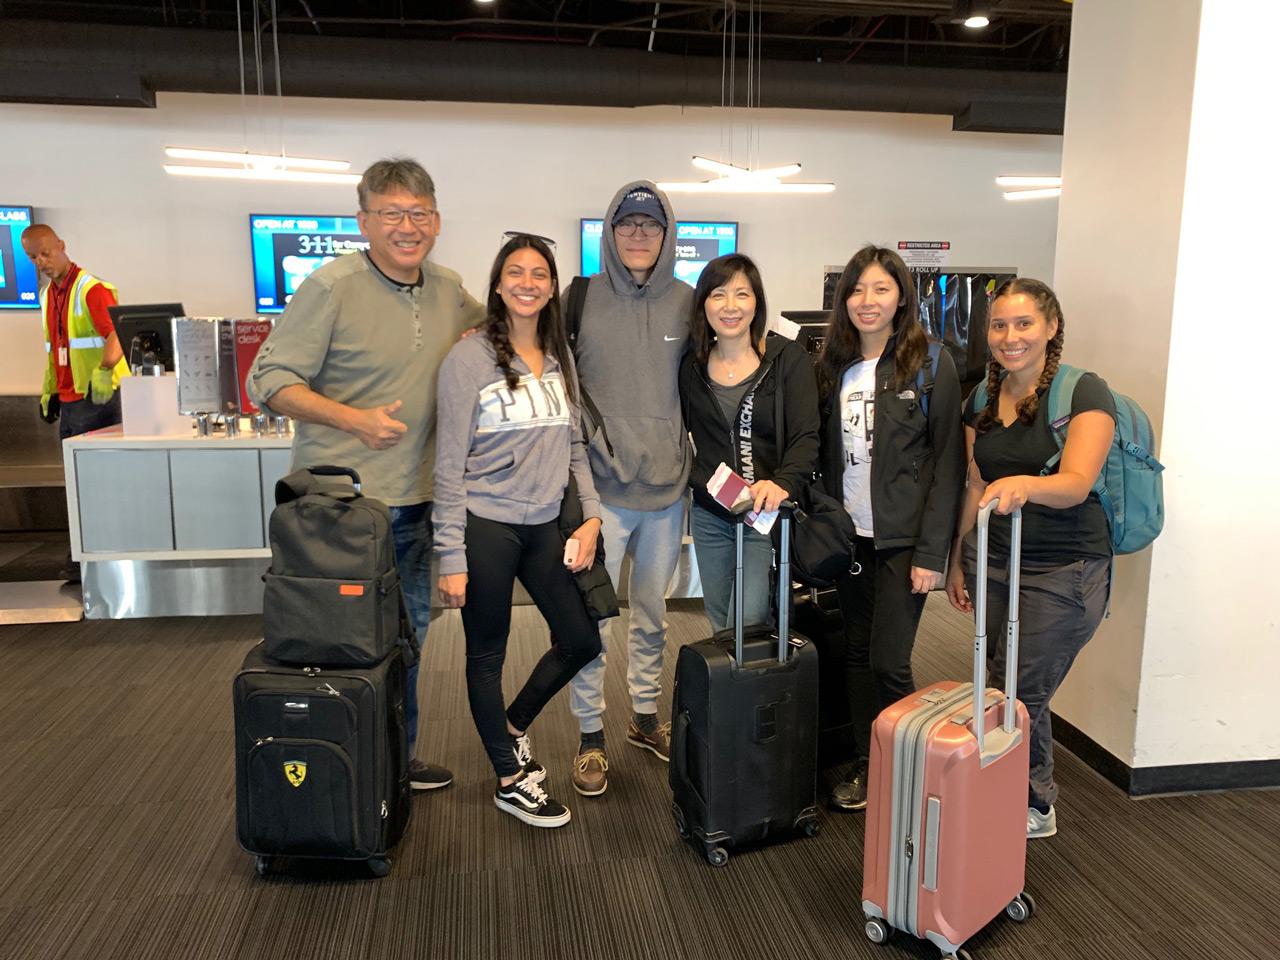 July 24: Our dental team at the airport ready for our 13 hour trip to Asuncion, Paraguay  Dr. Stephen Goei (oral surgeon), Denise (dental assistant), Adrian Goei (dental triage), Dr. Gin Goei (dentist), Megan Goei (surgery assistant), Erin (surgery assistant)